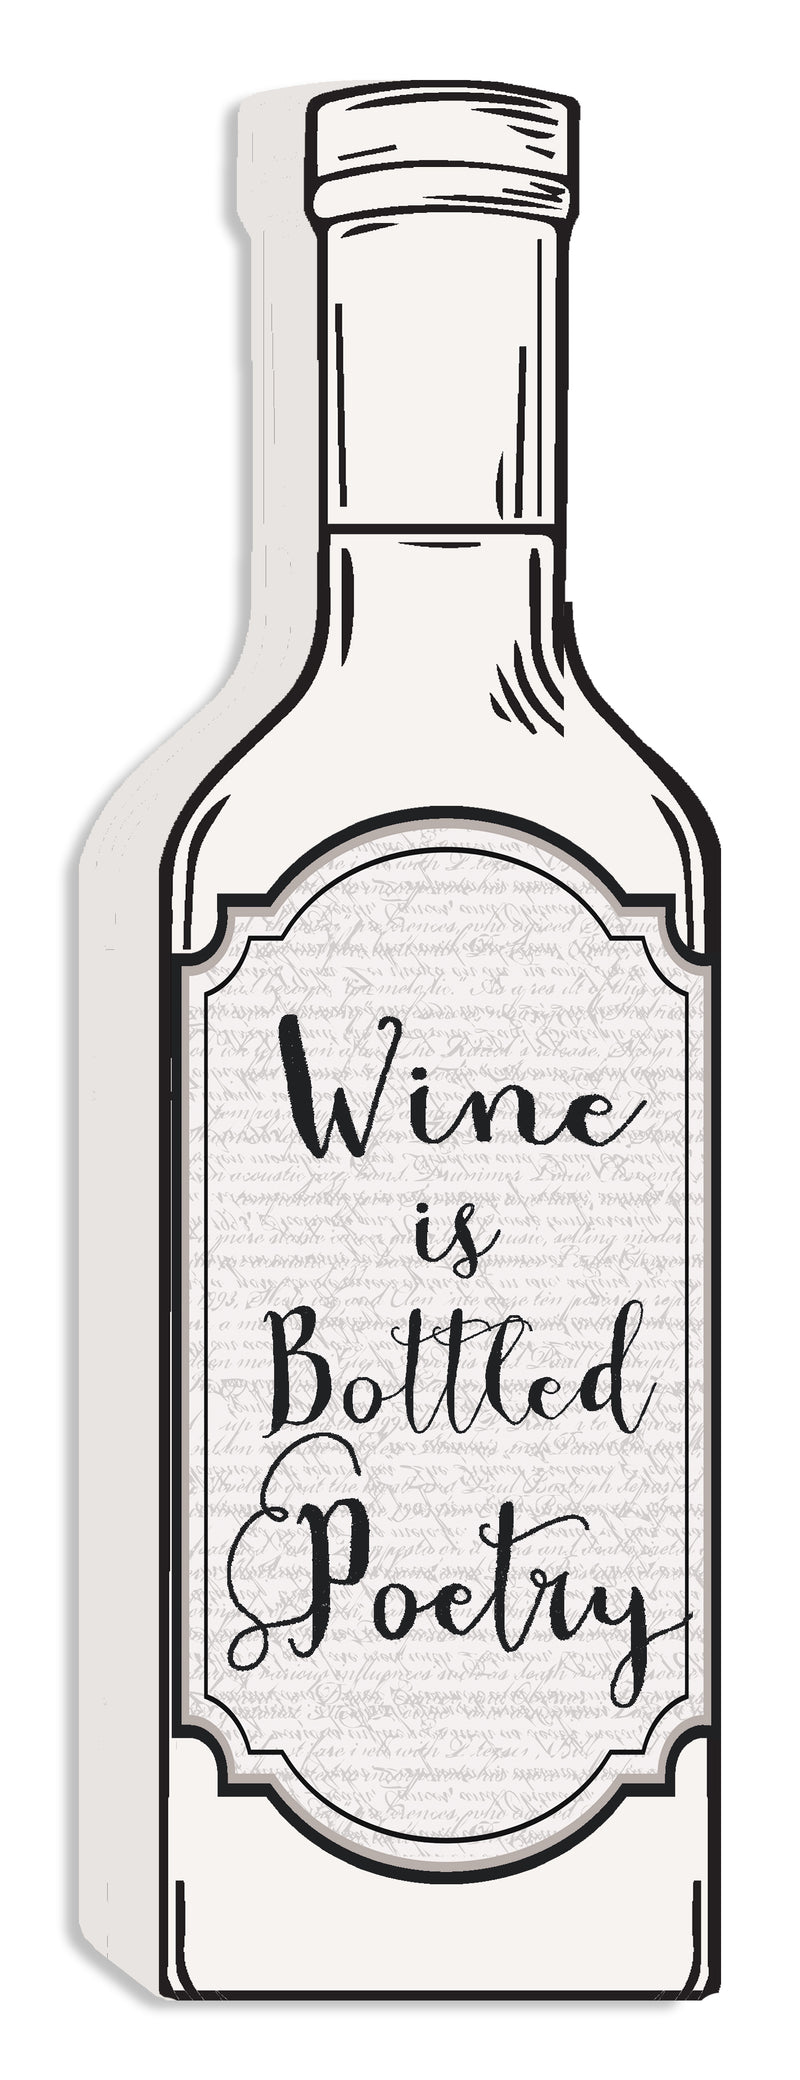 'Wine Is Bottled Poetry' - White Cut Out 12X4